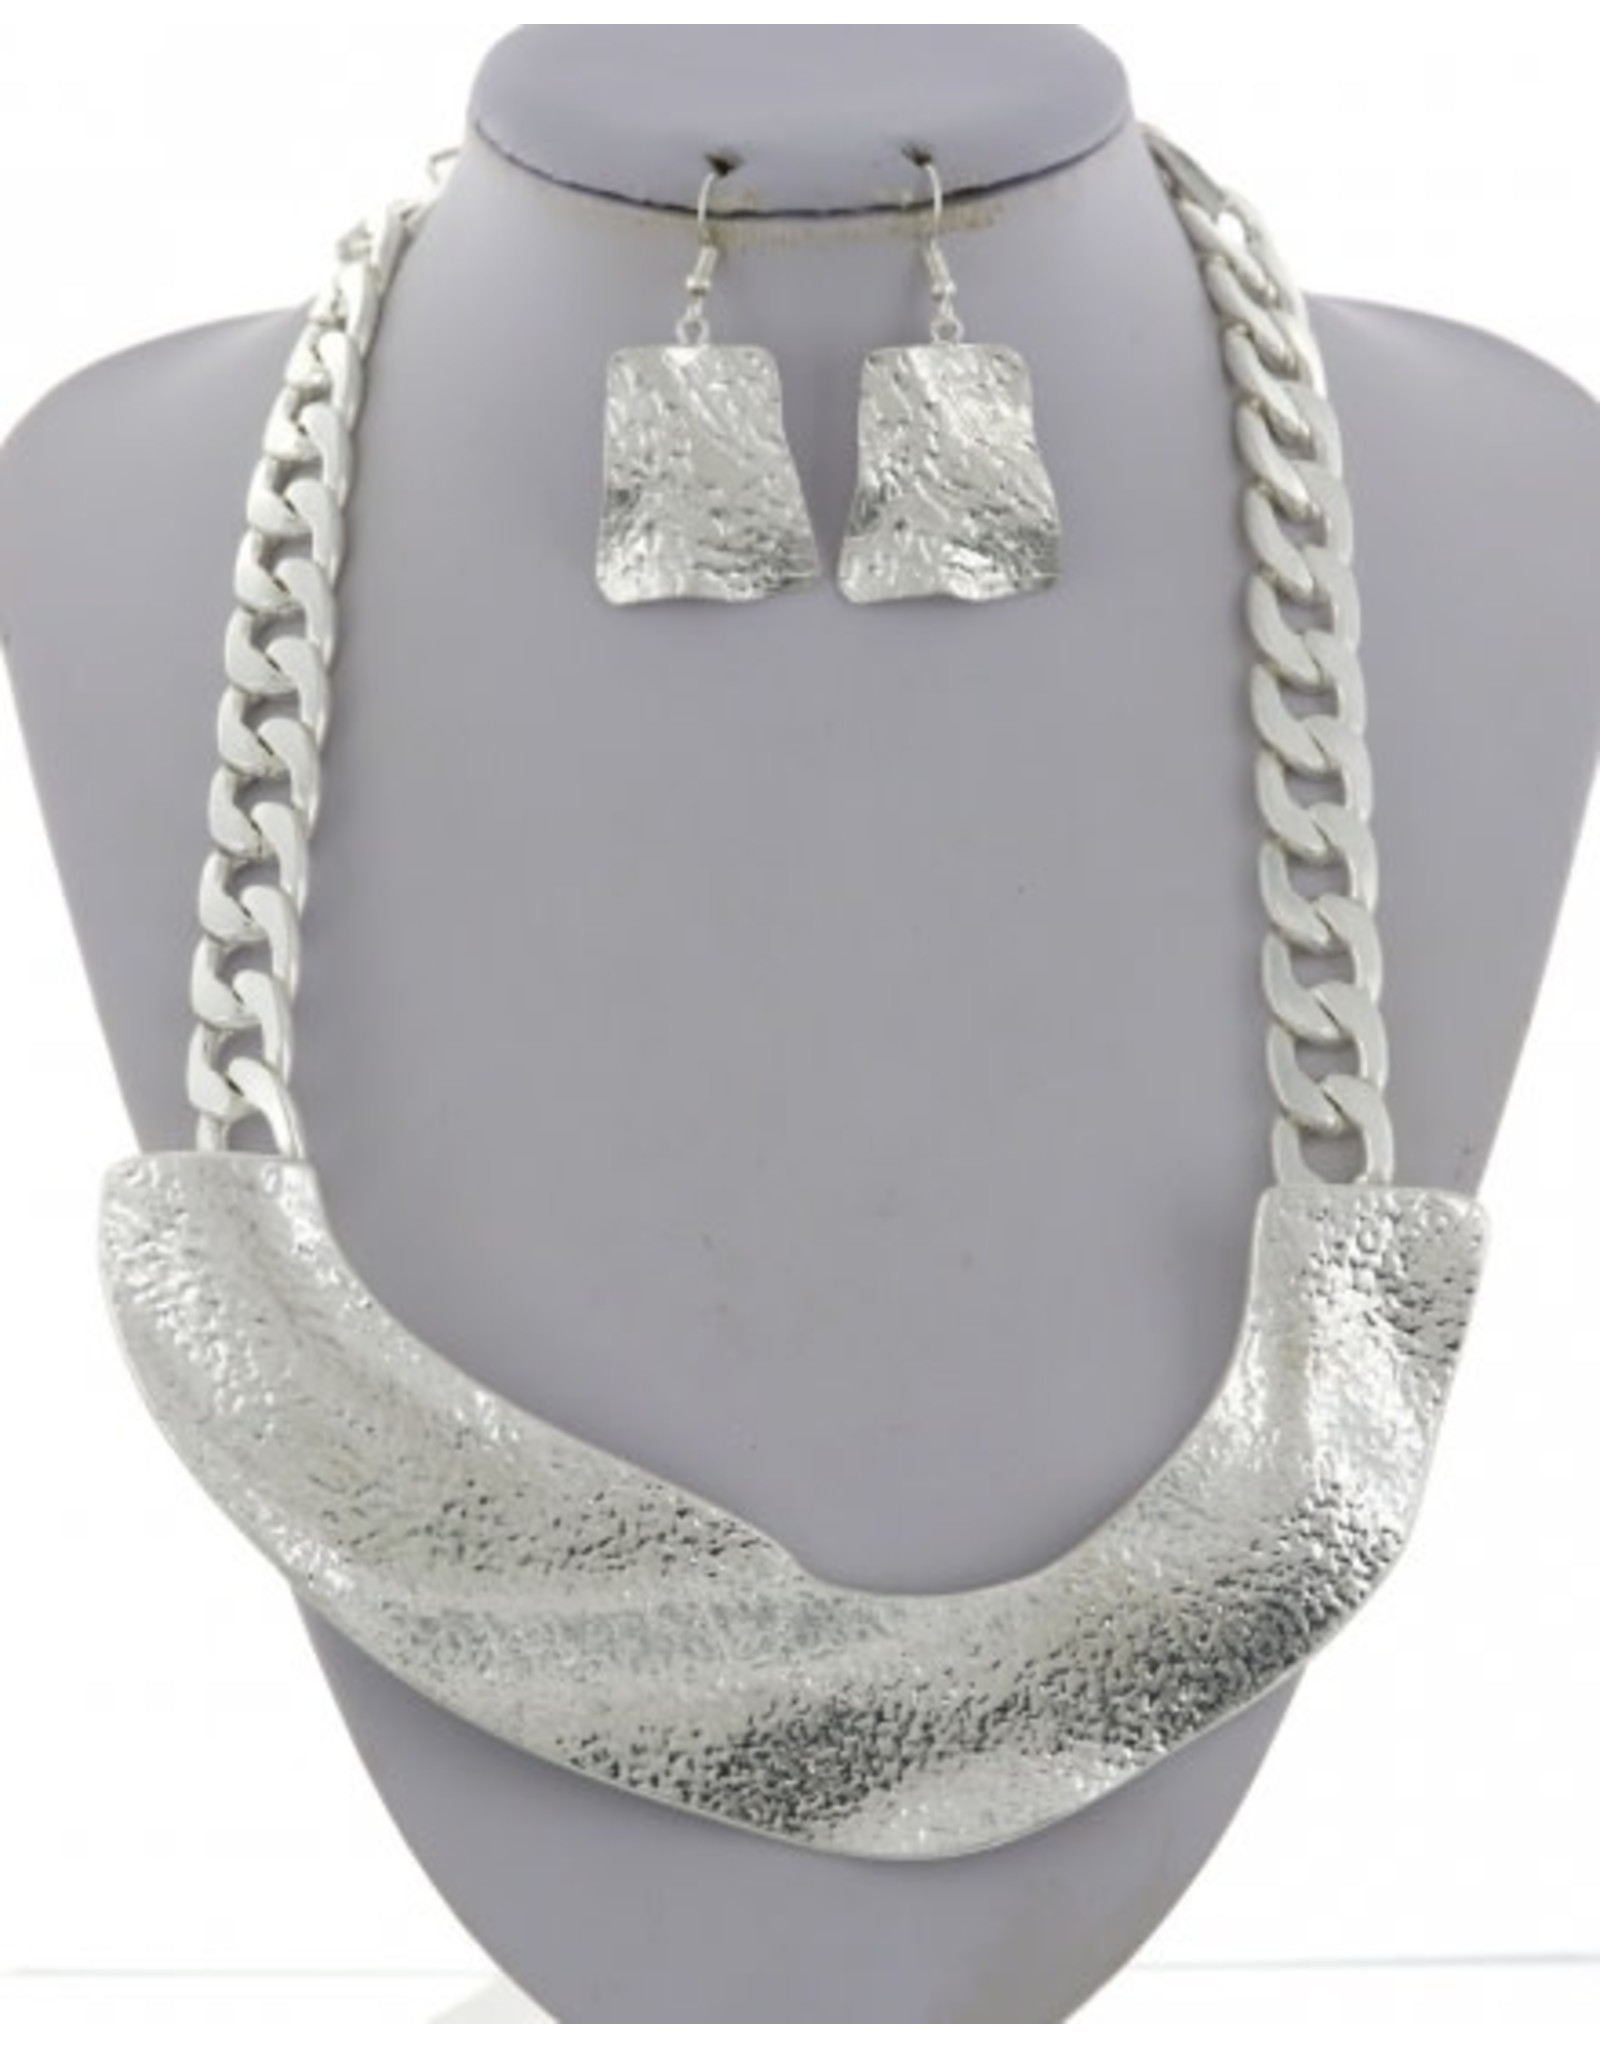 Hammered Metal Necklace and Earring Set